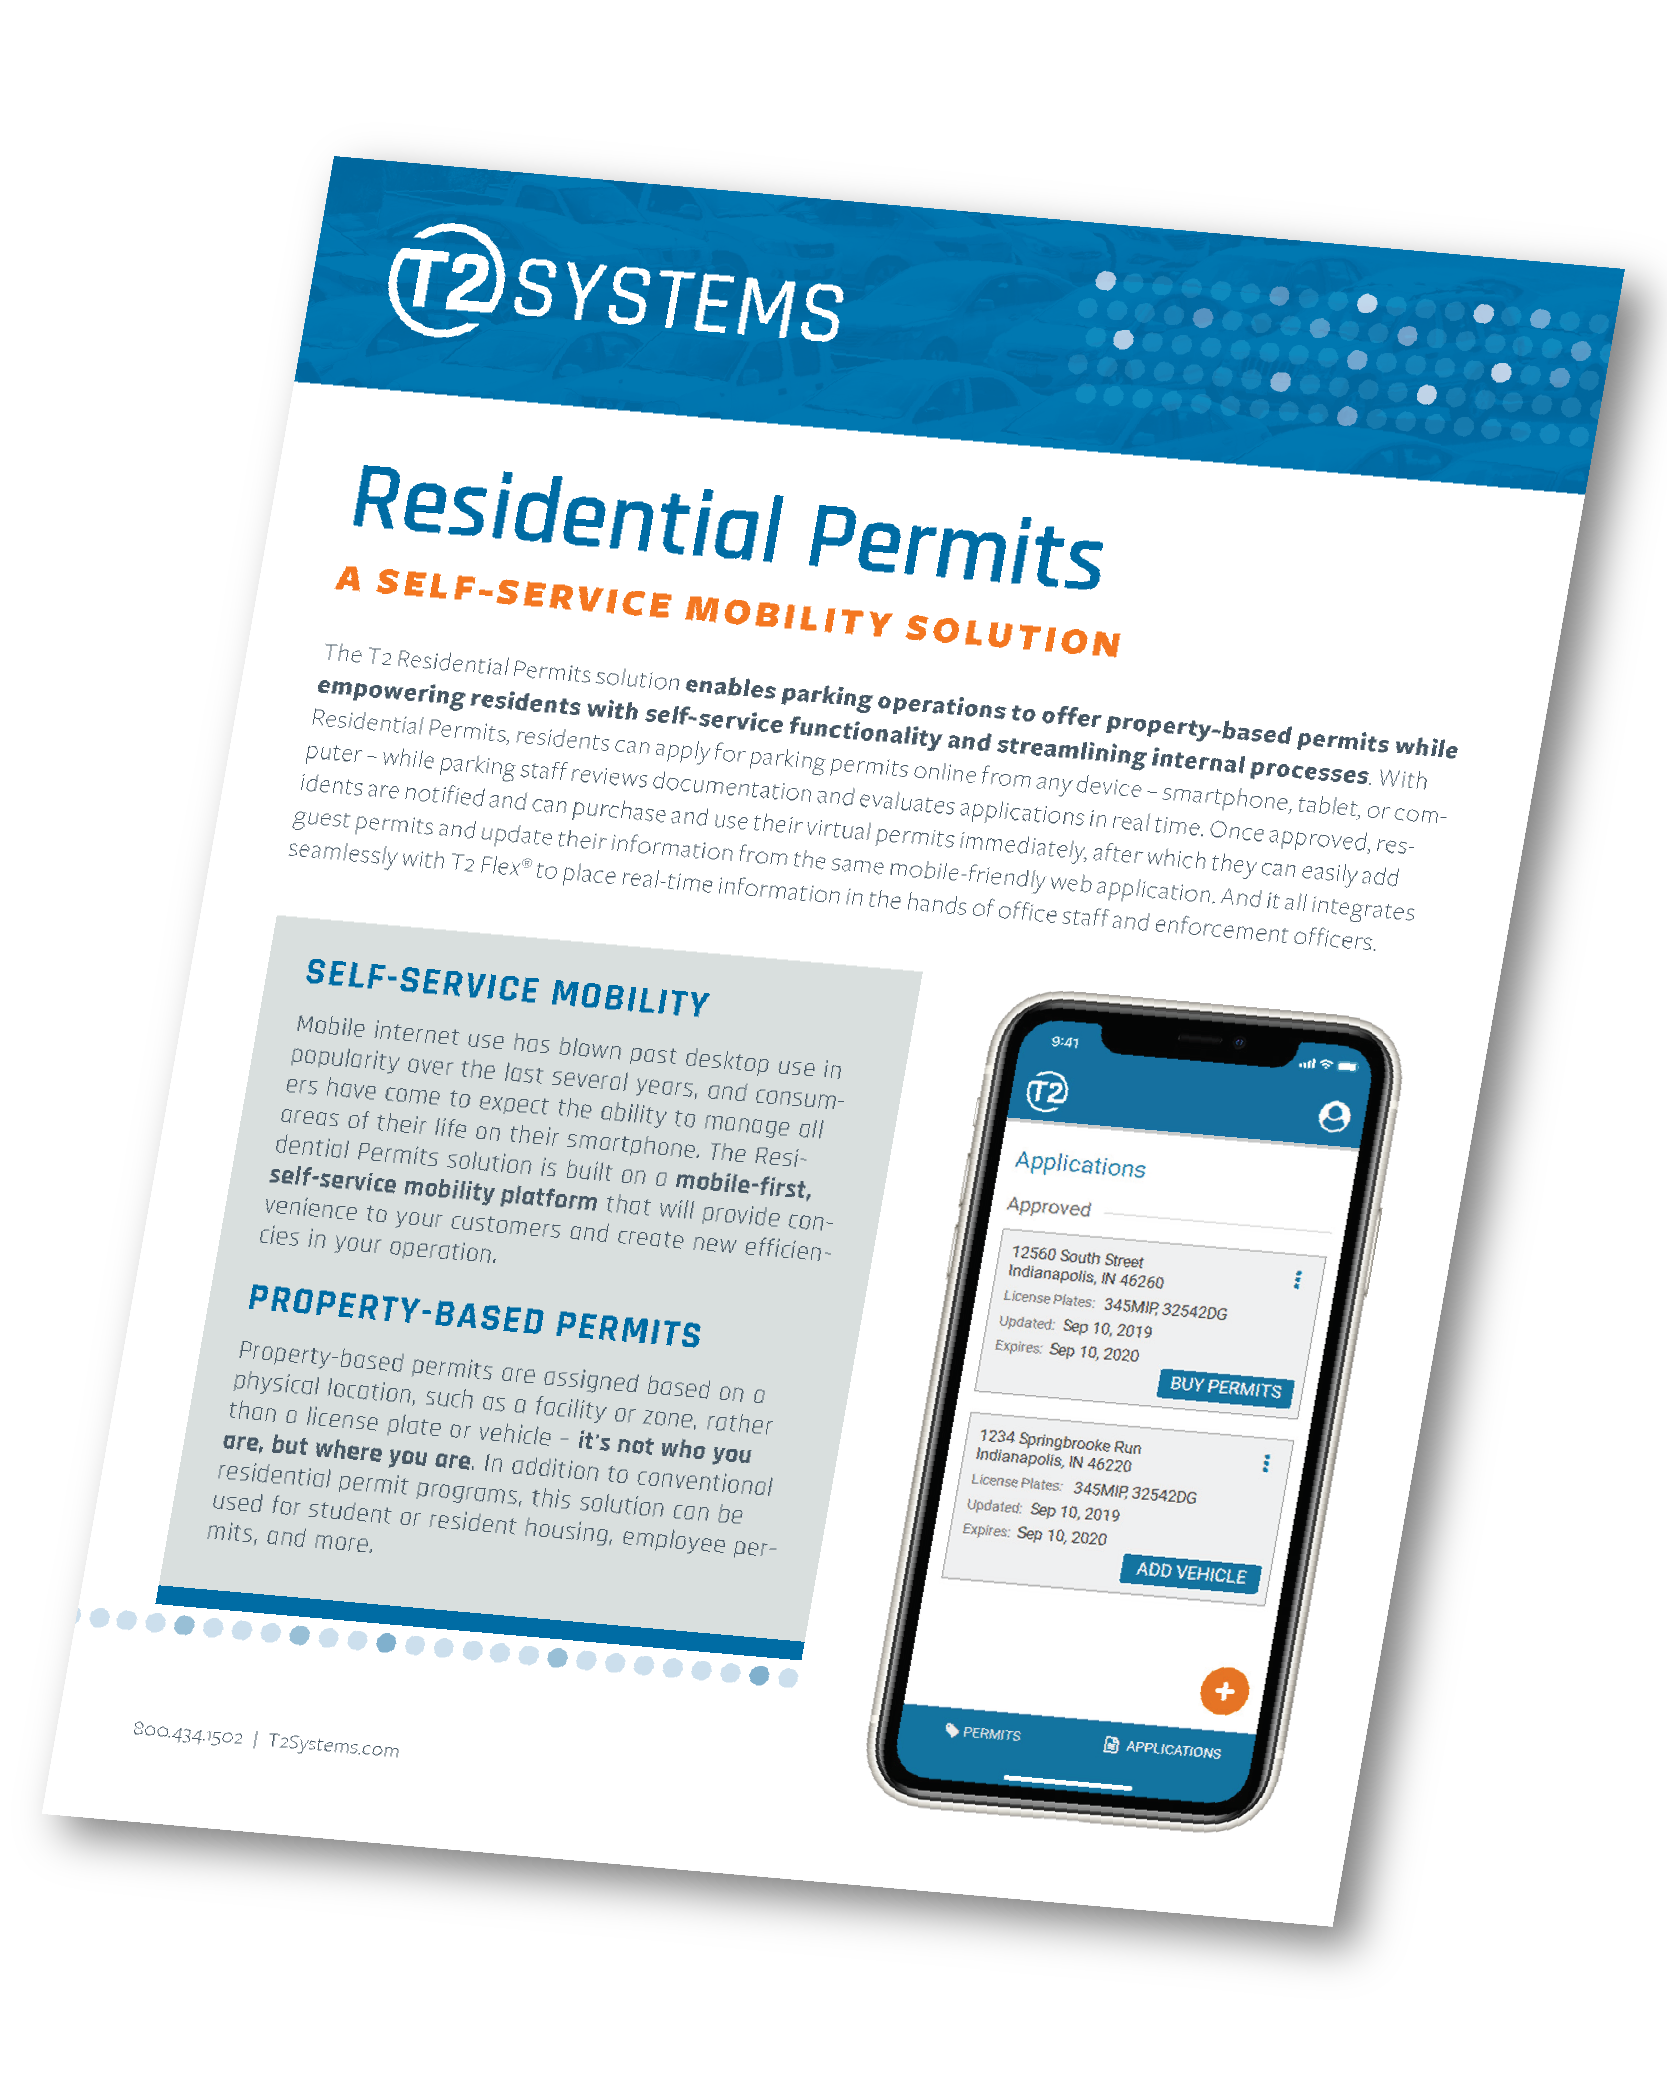 T2 Residential Permits information sheet